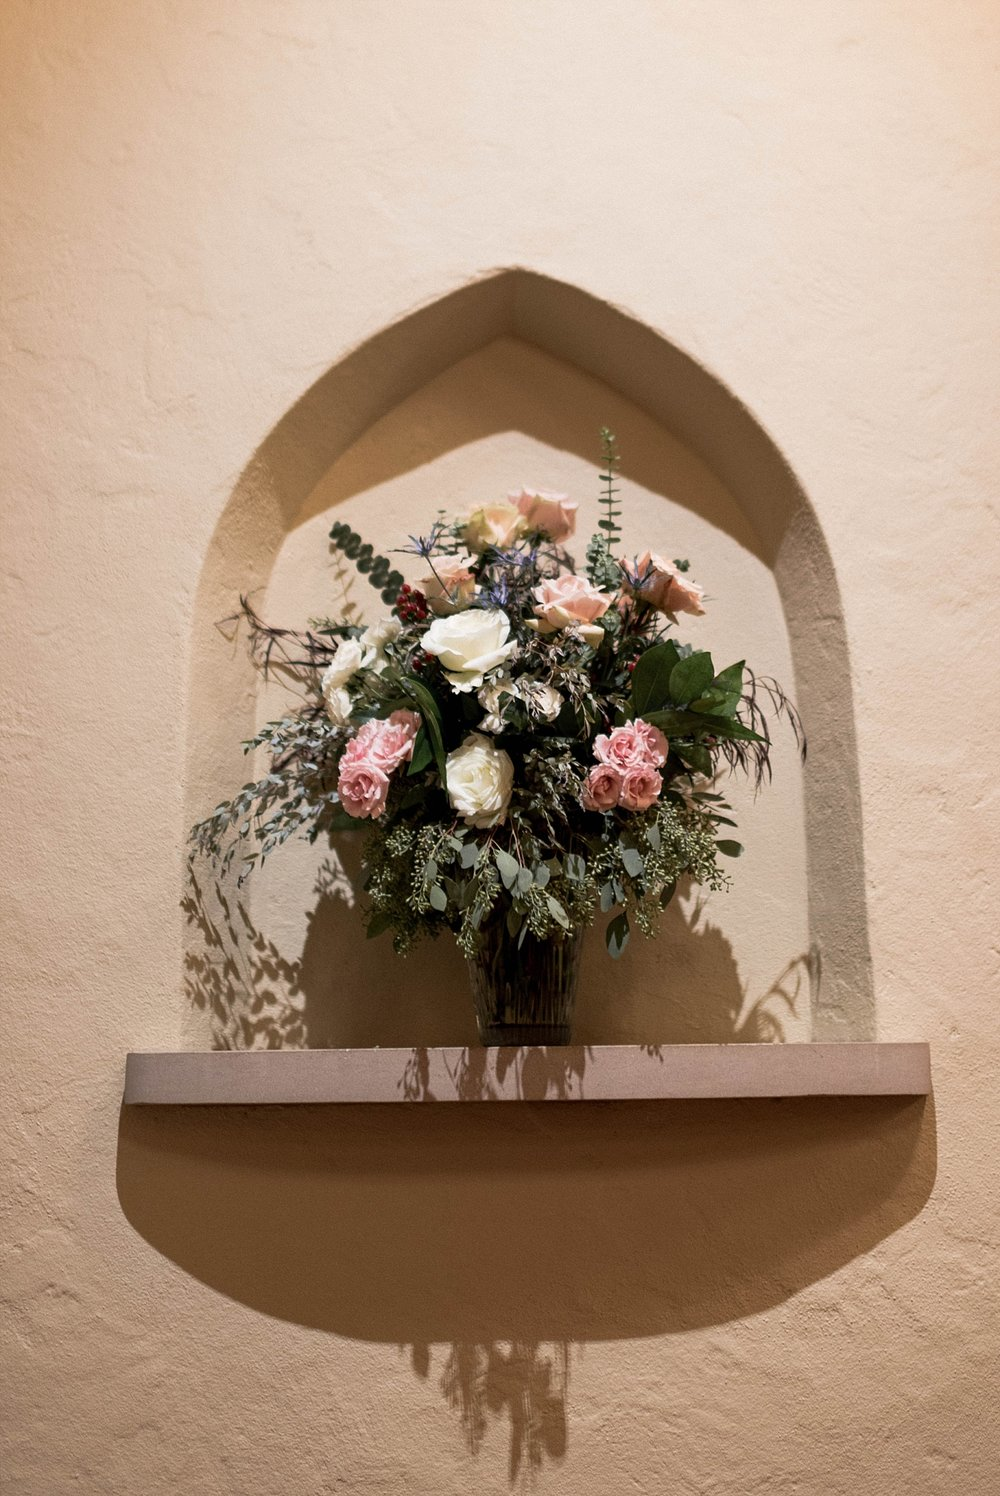 Flowers floral wedding details church chapel bride groom